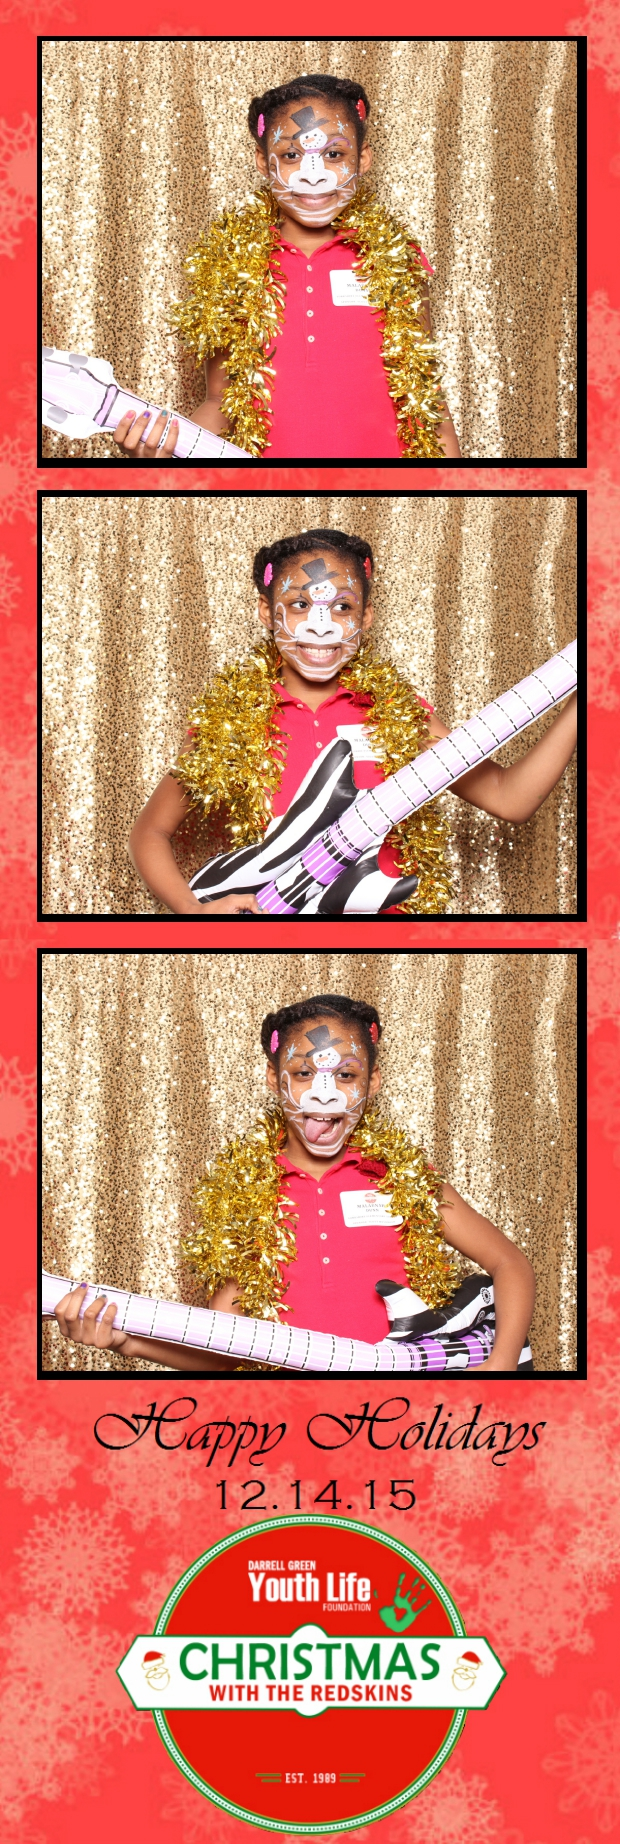 Guest House Events Photo Booth DGYLF Strips (52).jpg